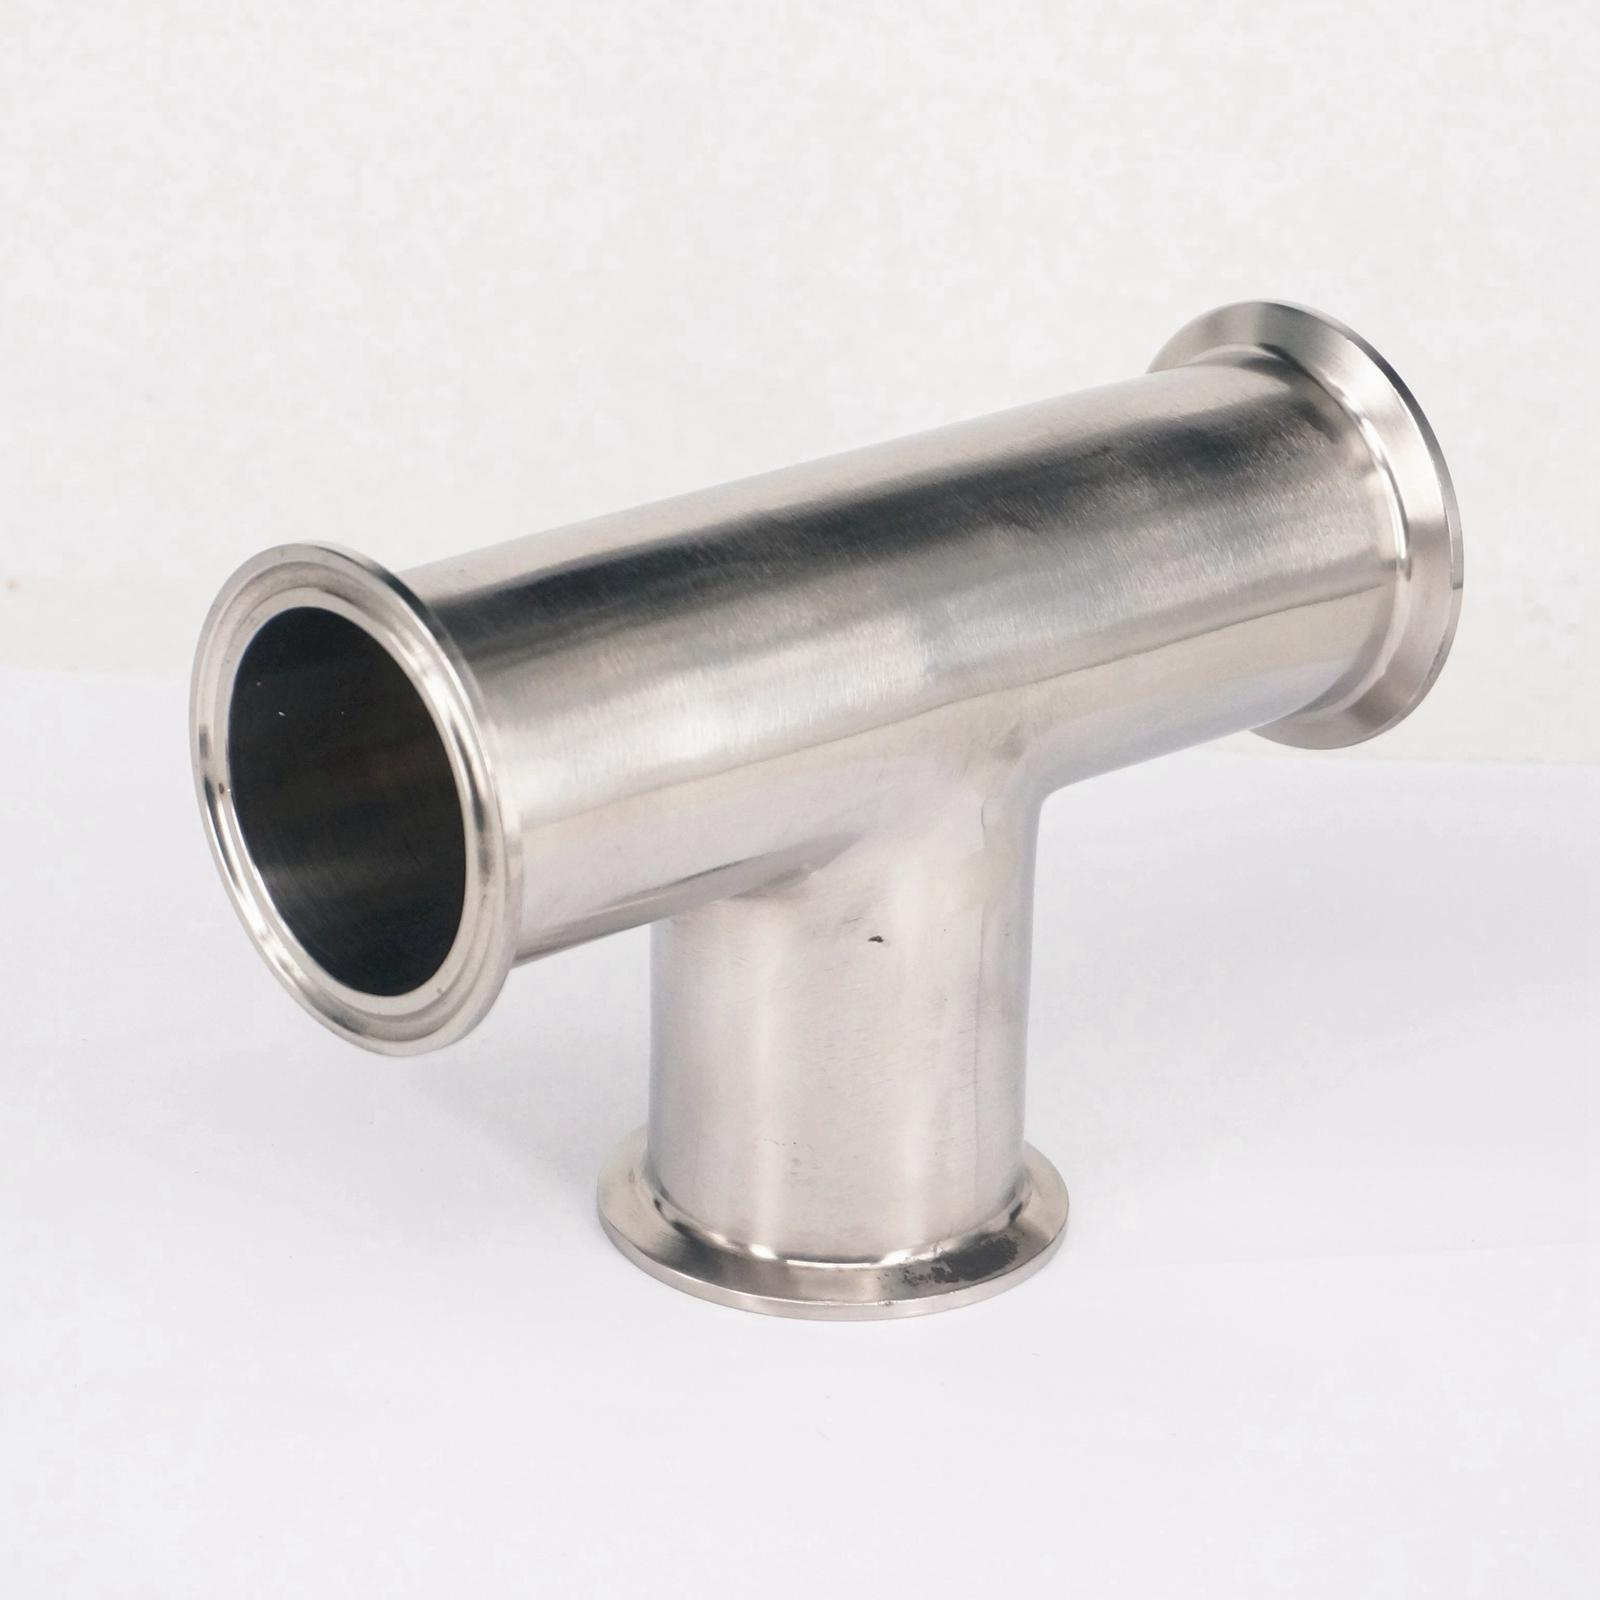 51mm 2 O/D 304 Stainless Steel Sanitary Ferrule Tee Connector Pipe Fitting Tri Clamp 1 2 bsp male x 1 5 tri clamp 304 stainless steel pipe fitting connector for homebrew with hex nut